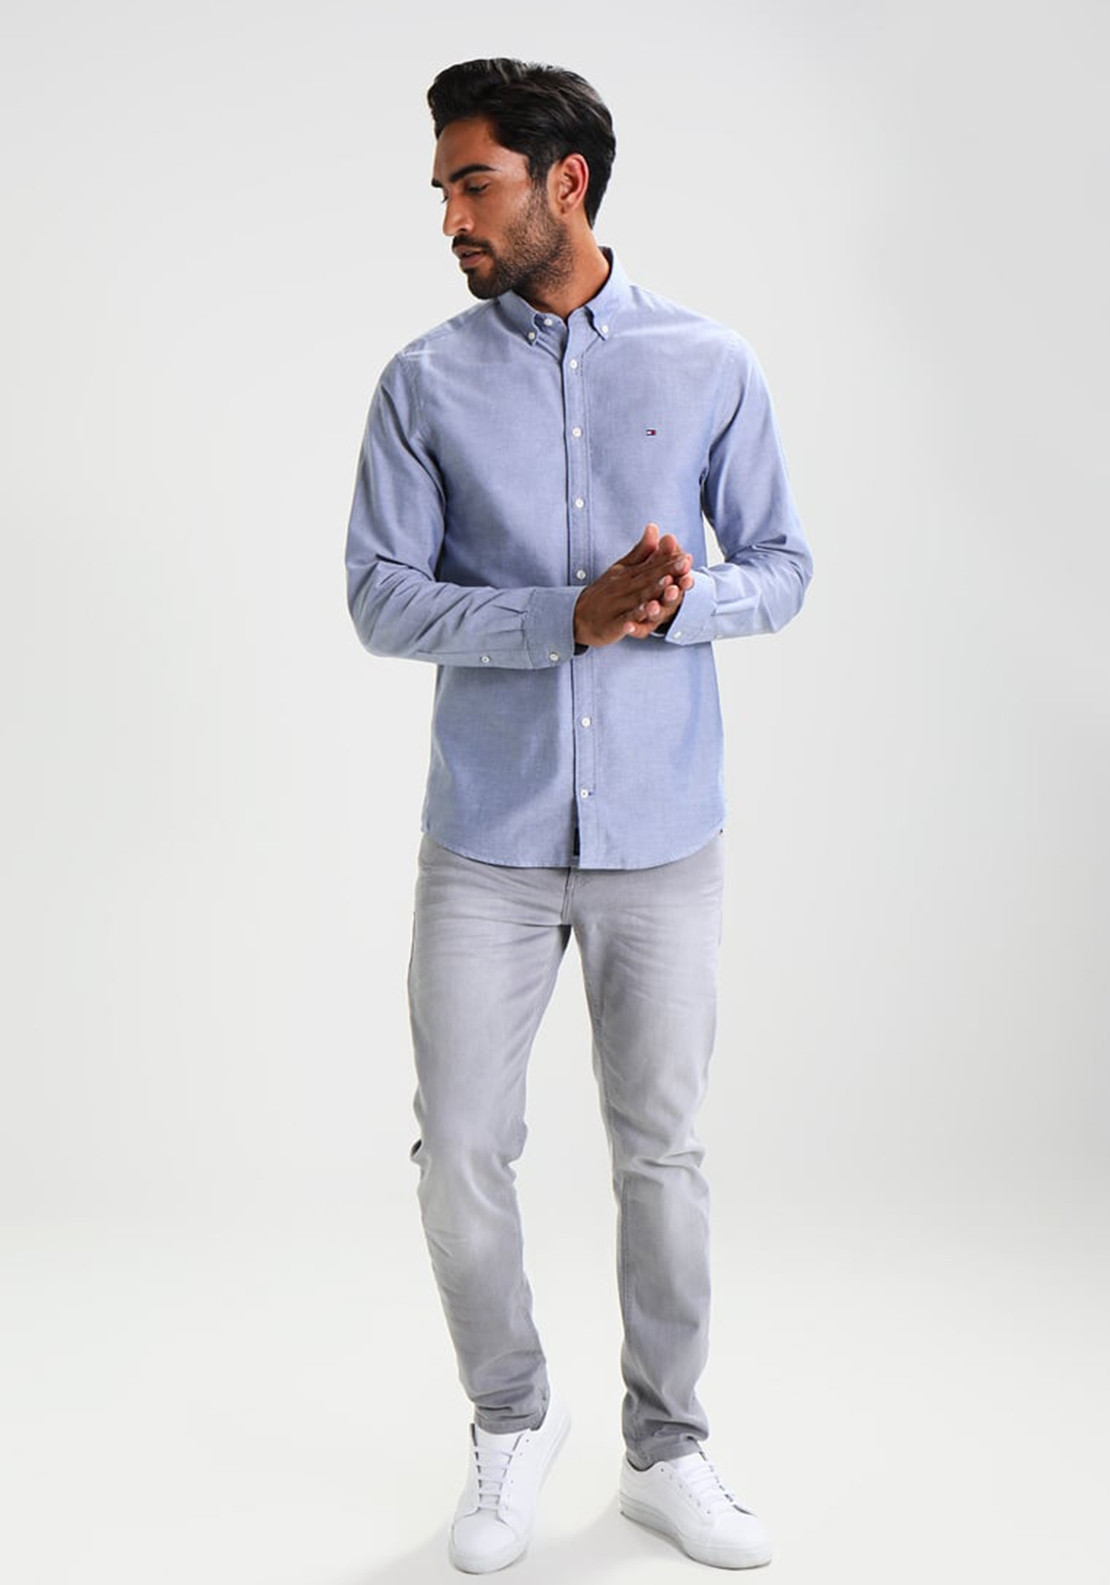 9509c4f93 Tommy Hilfiger Men's Engineered Oxford Shirt, Blue. Be the first to review  this product